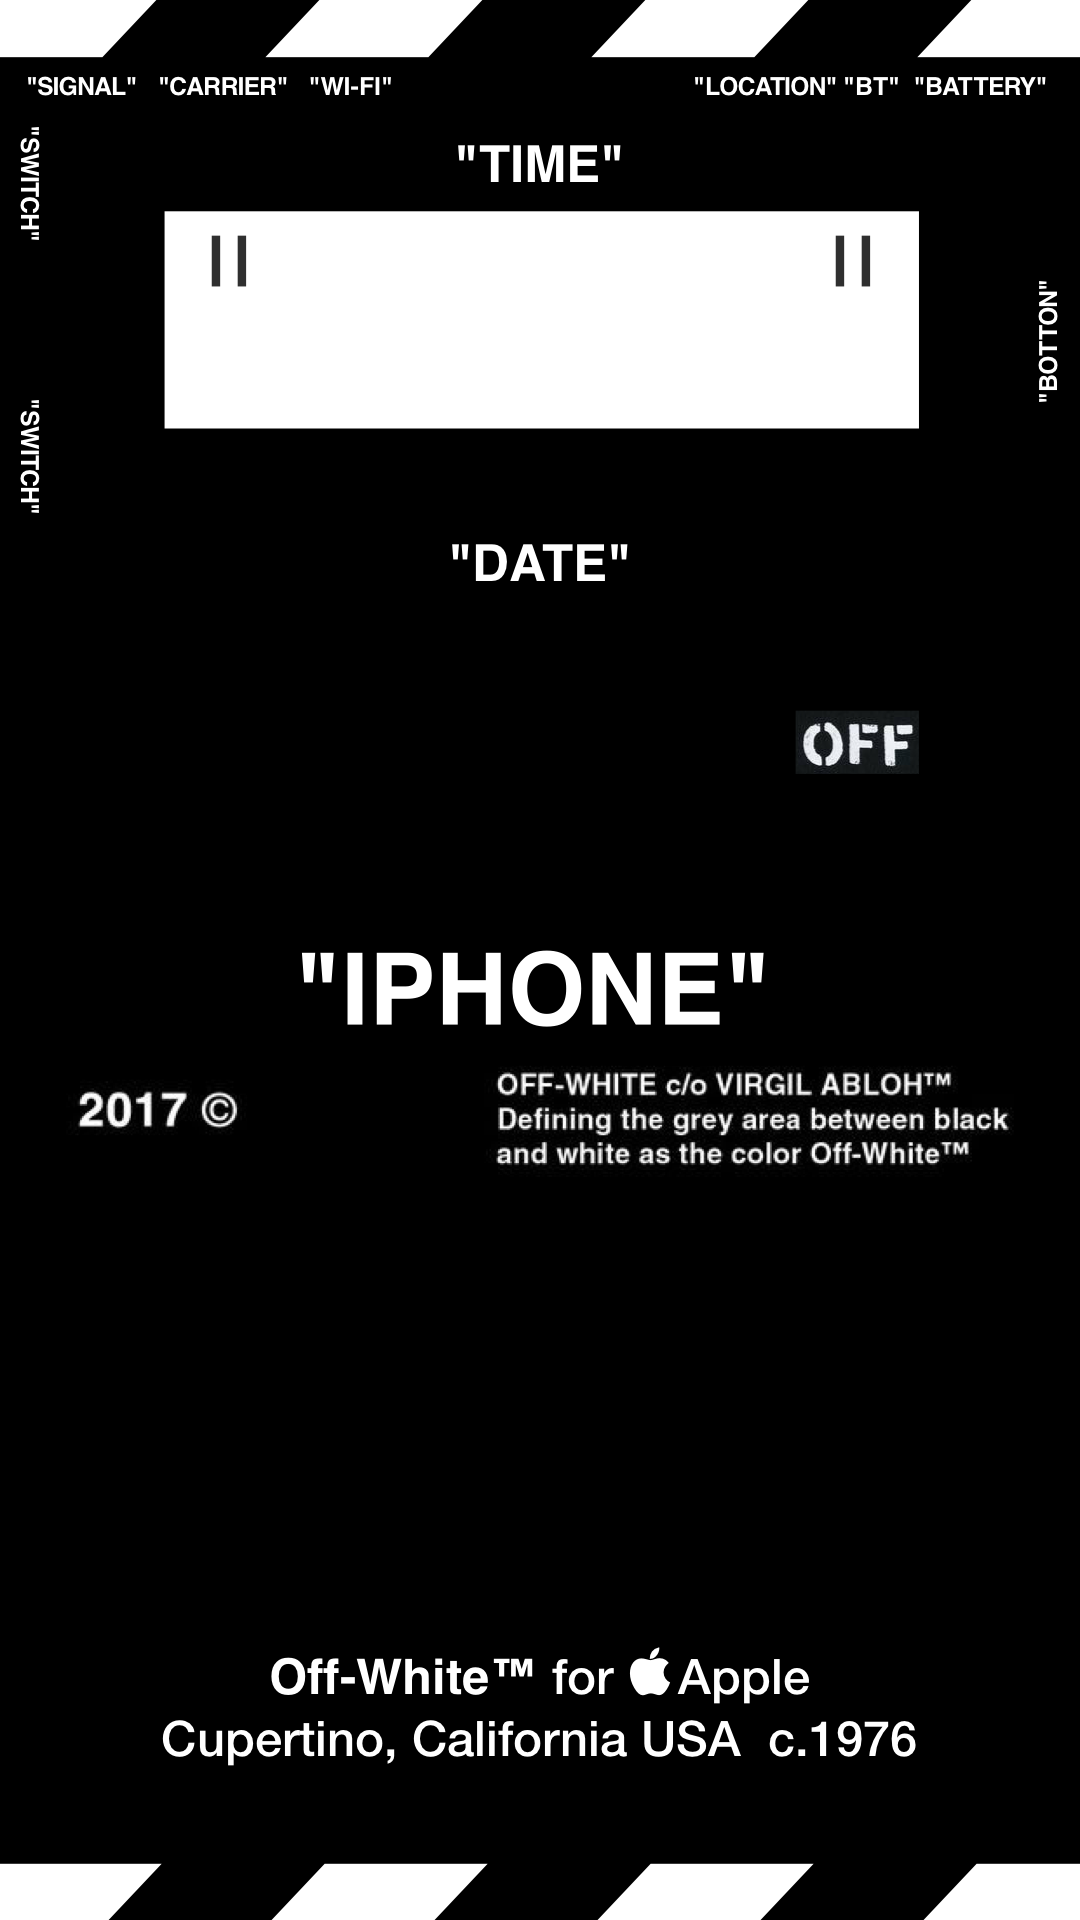 """Off-White™ """"OFFWHITE"""" """"WALLPAPER"""" """"IPHONE"""" """"壁紙"""" """"TYPE B""""   Black wallpapers"""